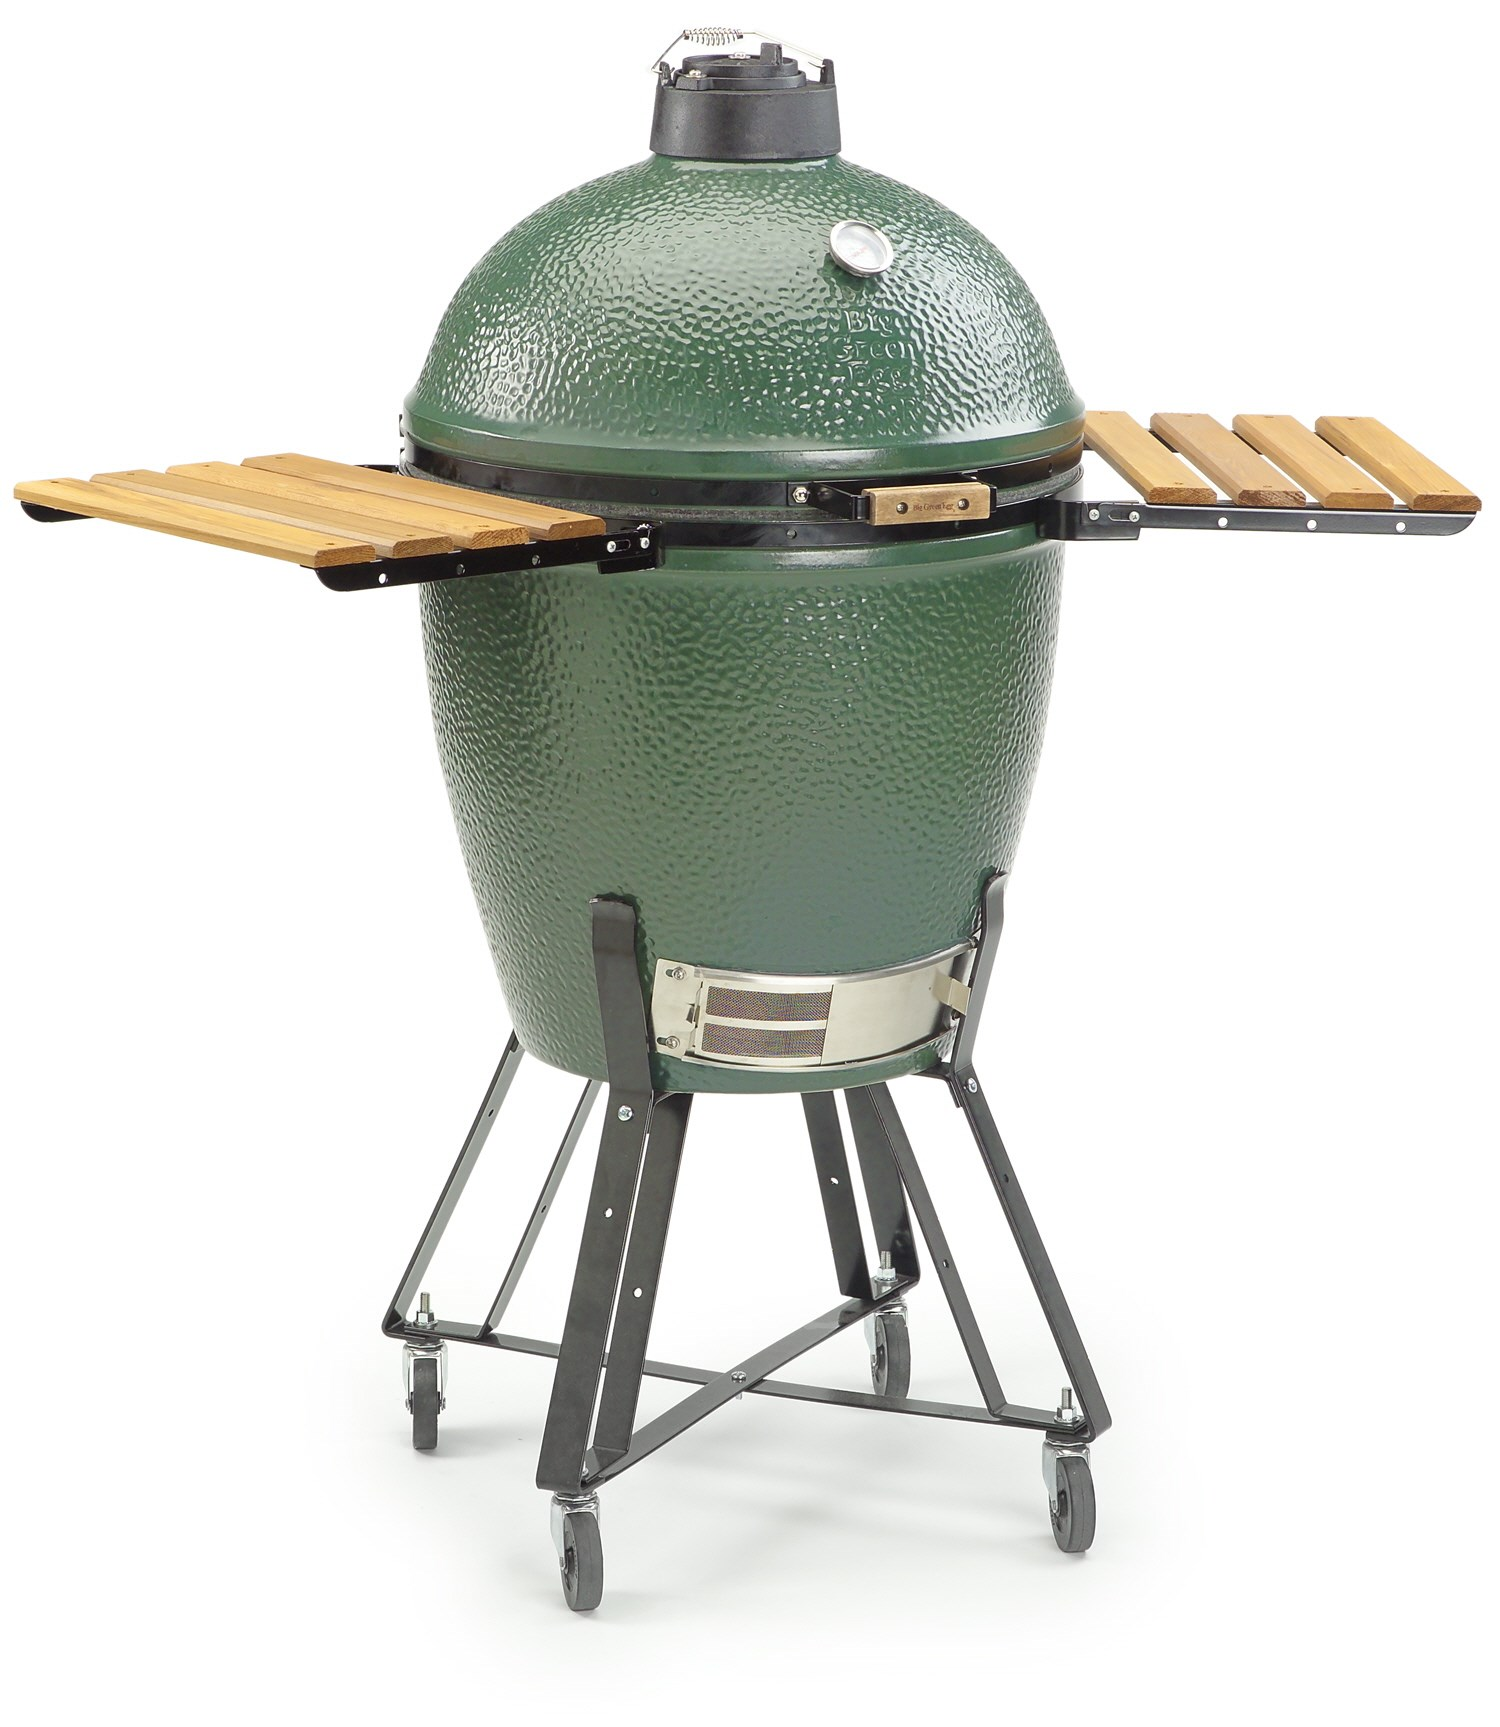 'Barbecue is geen tuinmeubel'